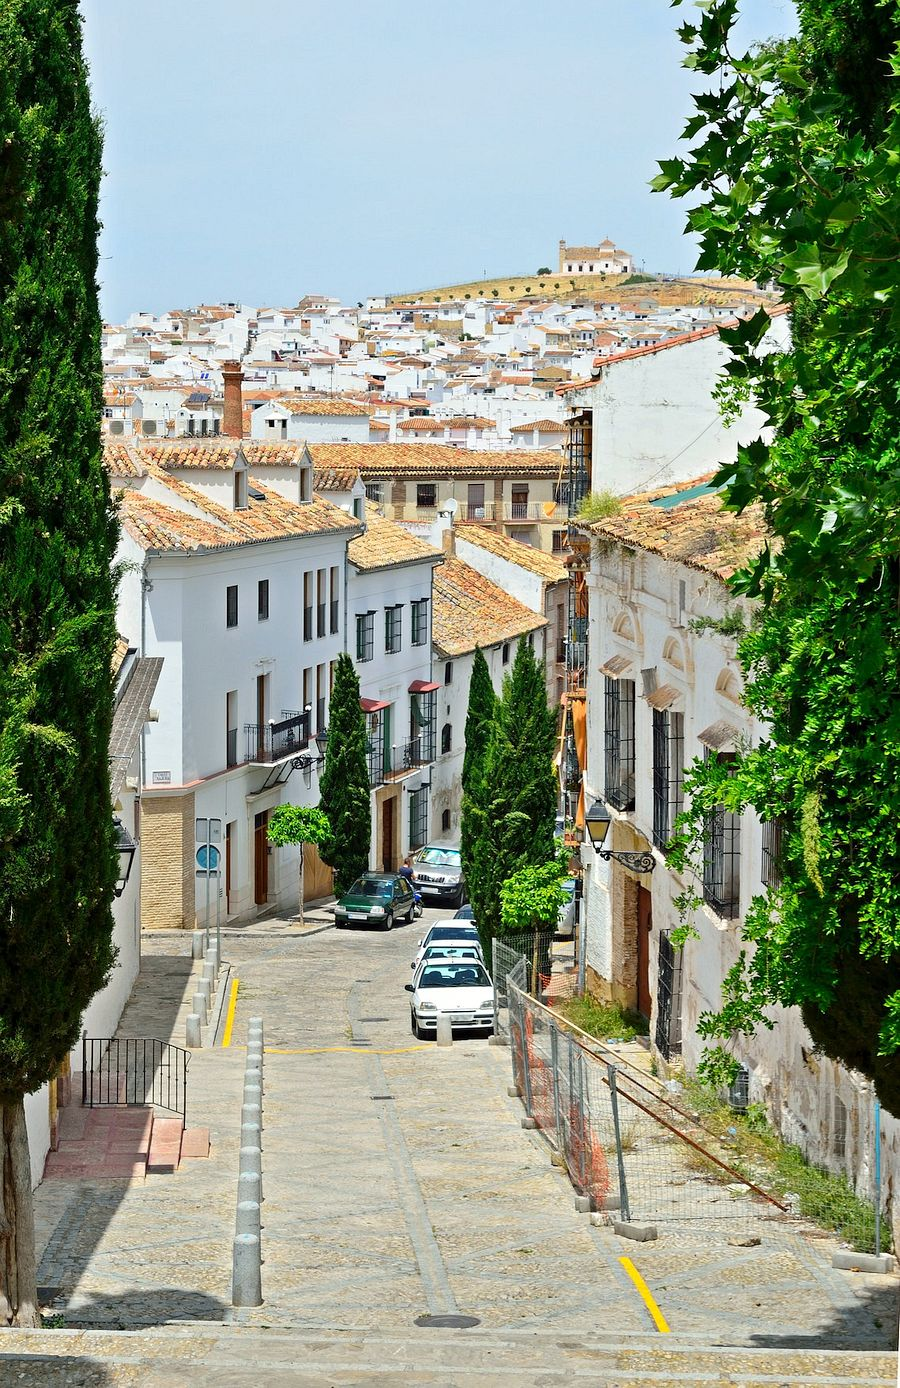 Street in Antequera